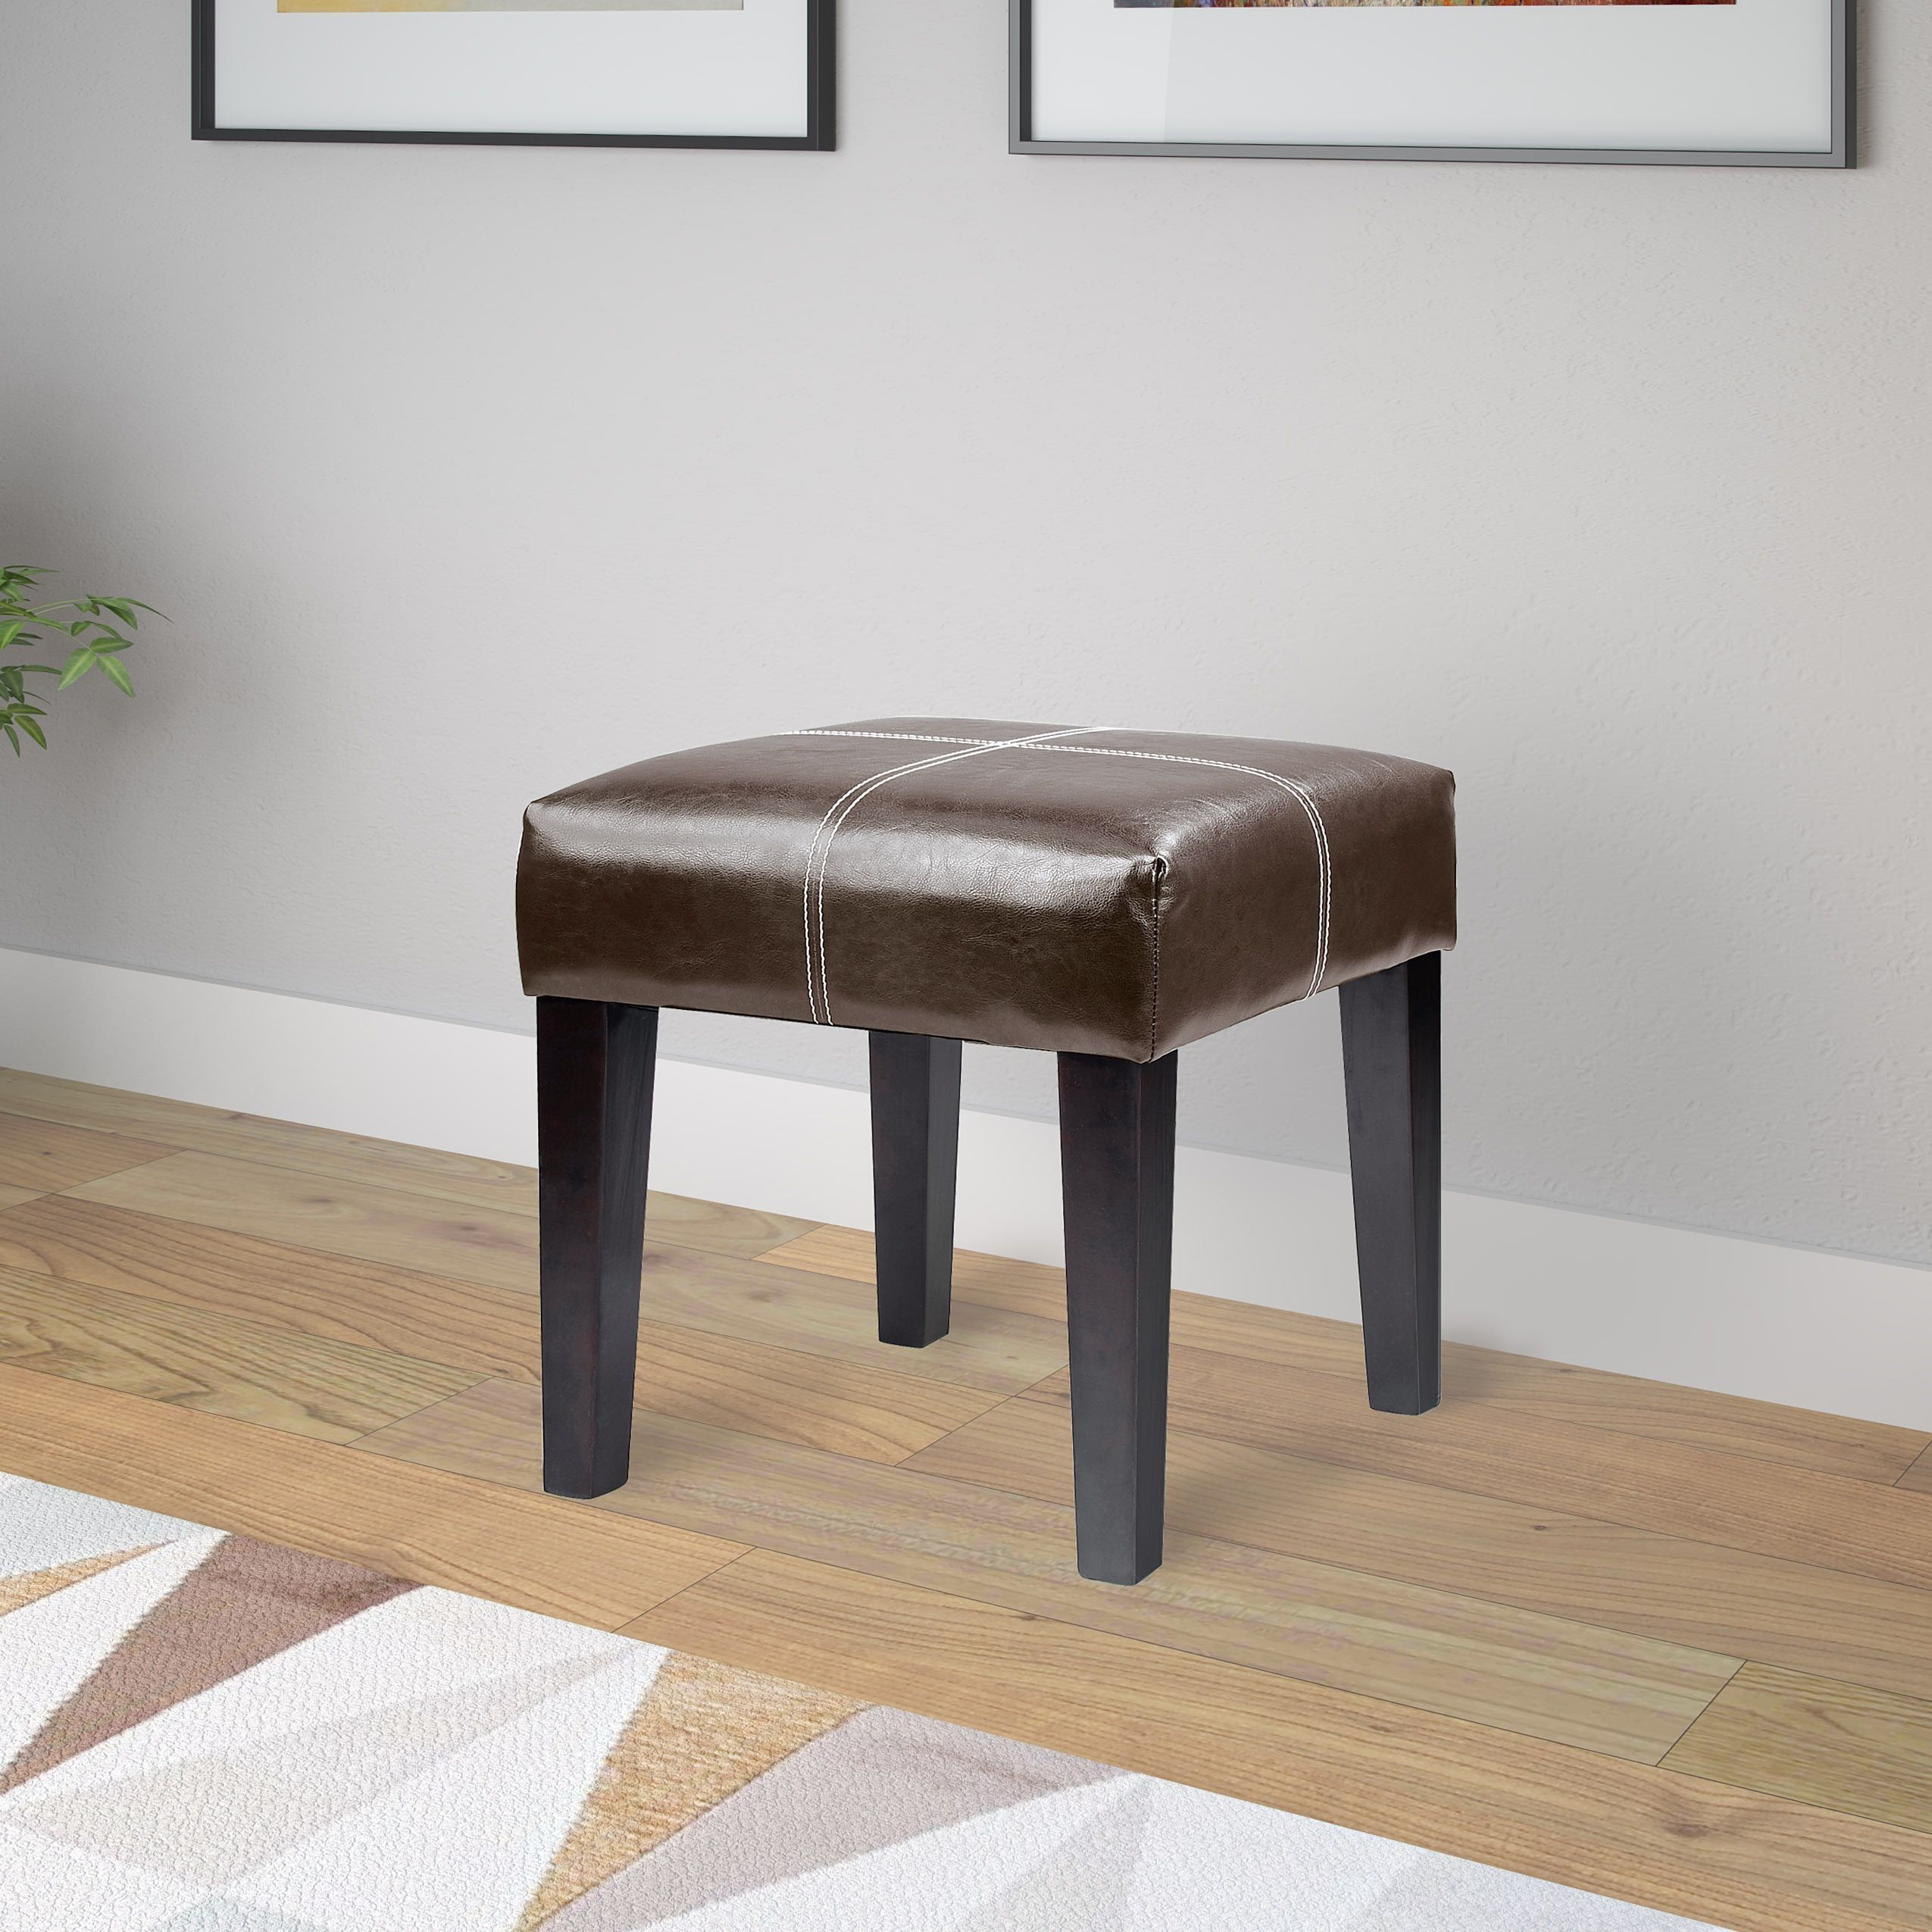 Dining room table with upholstered bench  CorLiving Antonio inch Bonded Leather Bench Dark Brown Size